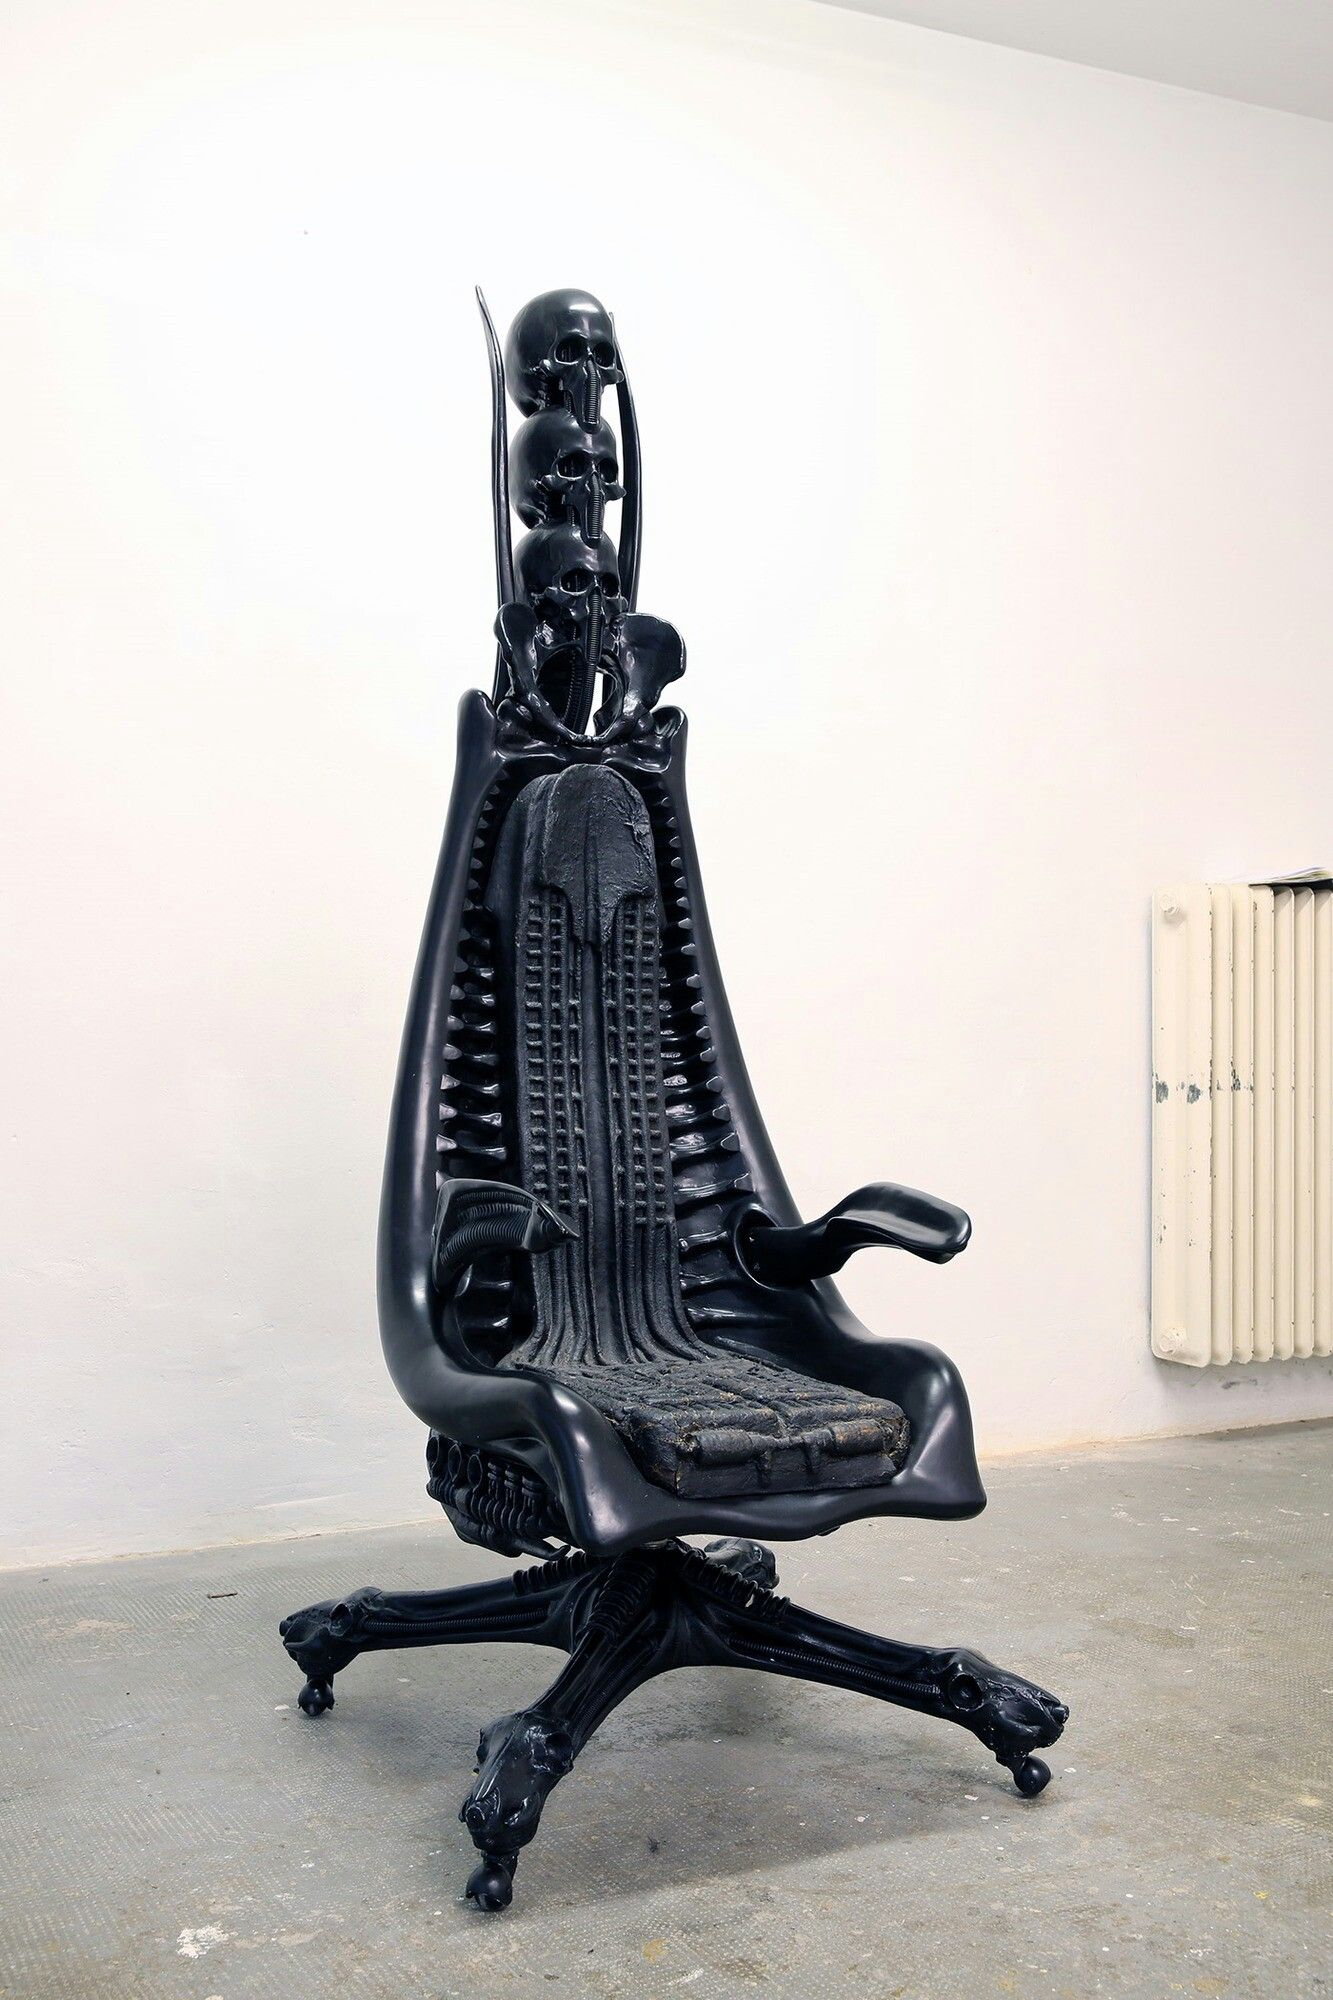 H r giger harkonnen capo chair 1981 polyester metal rubber 180 x 100 x 65 cm